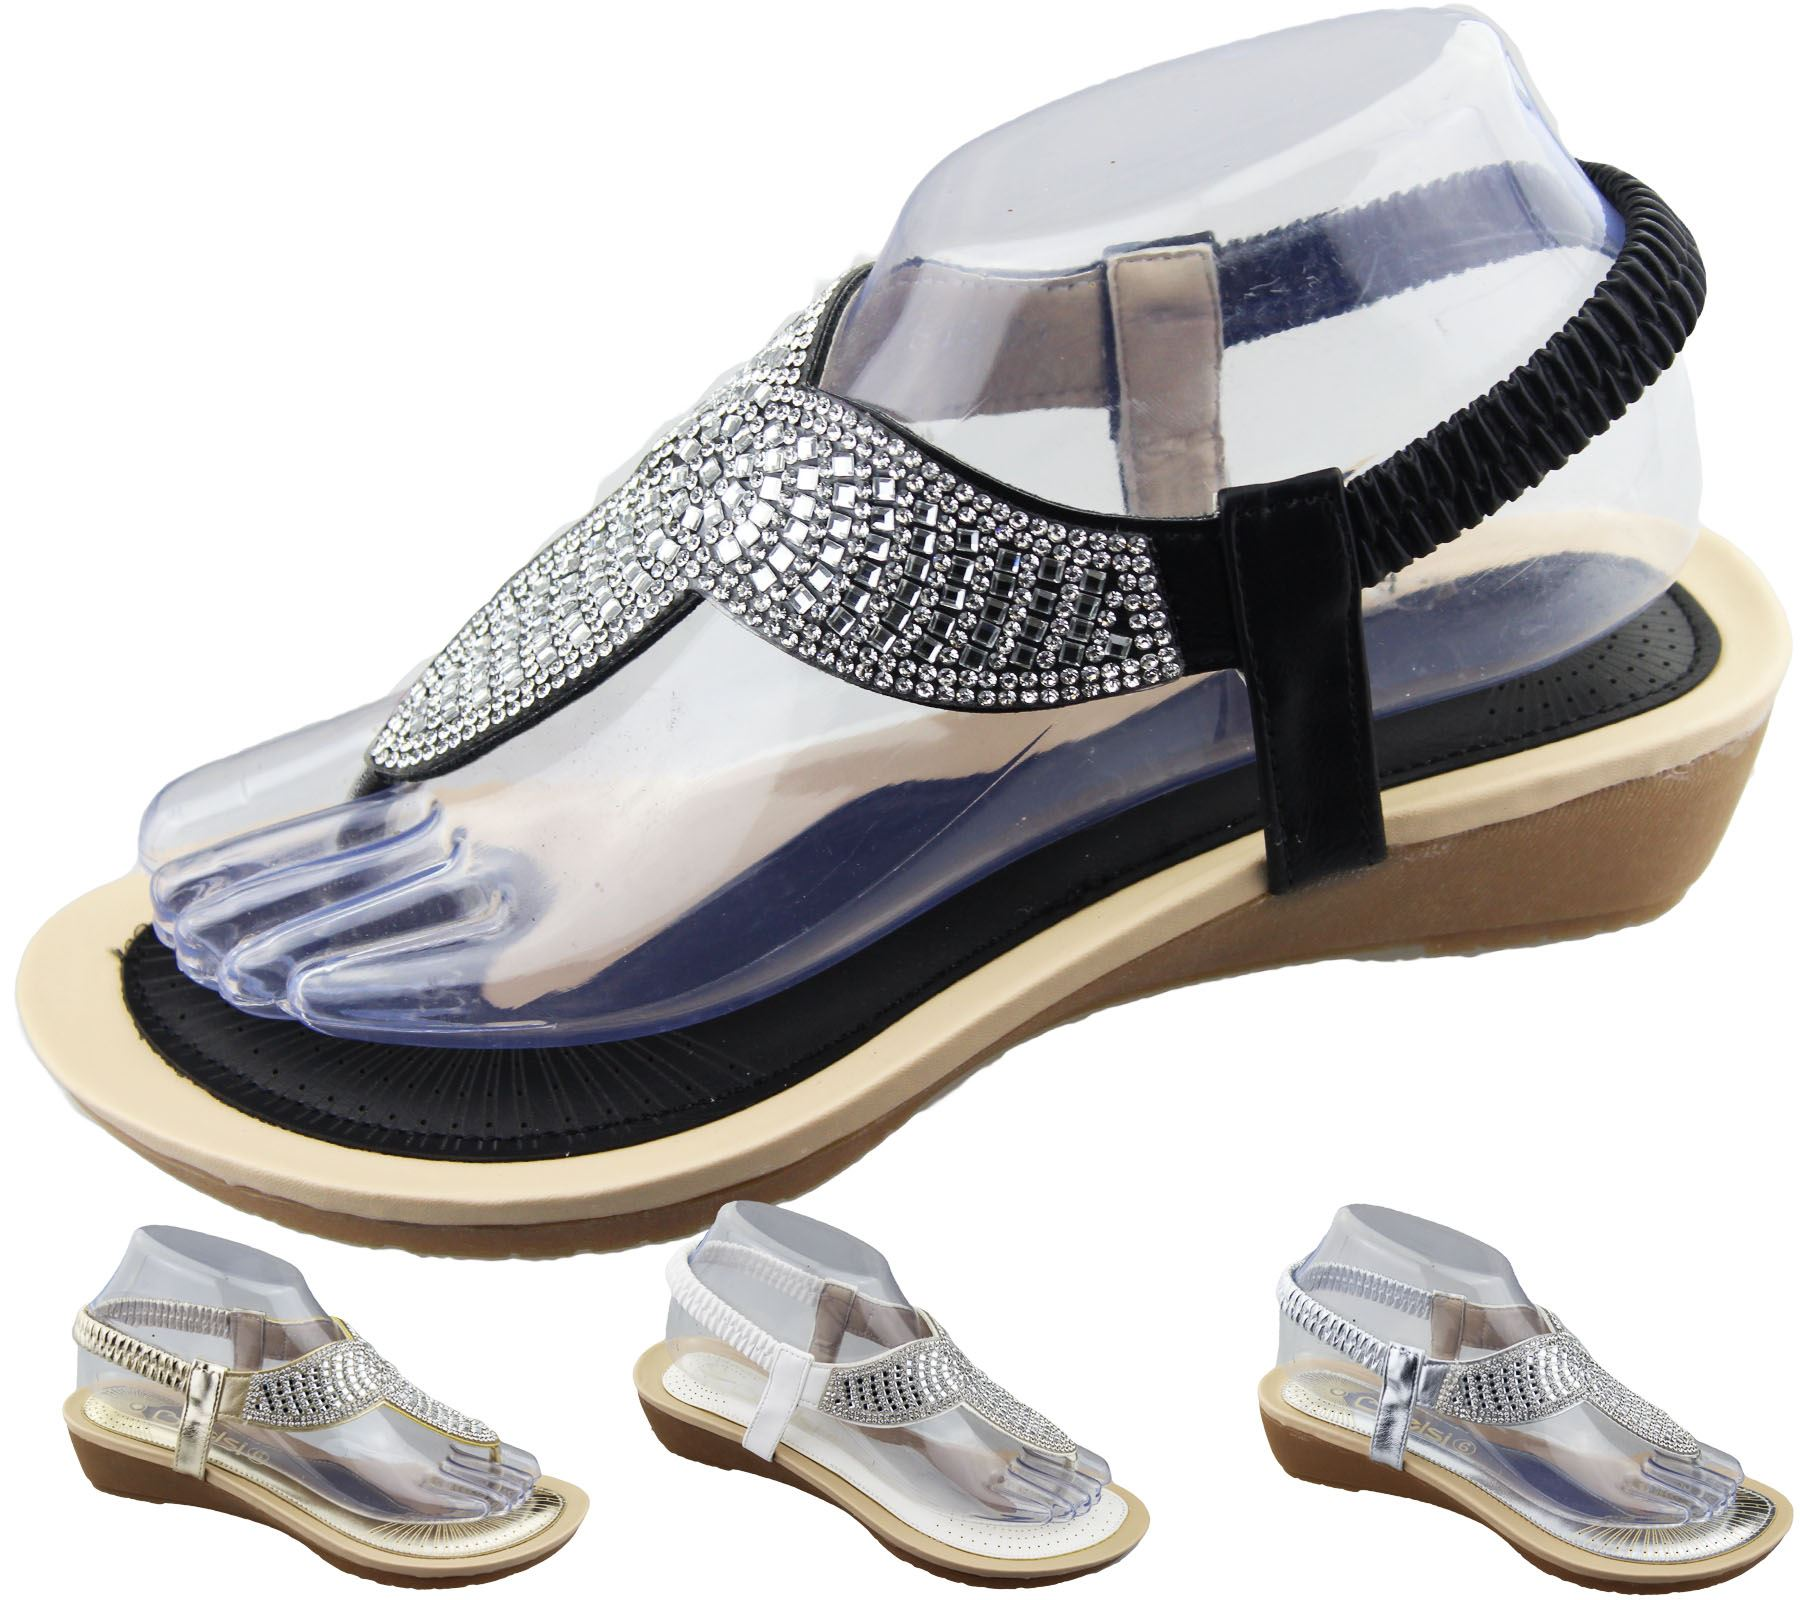 FOOTWEAR - Toe post sandals Sandalia COJblFeu